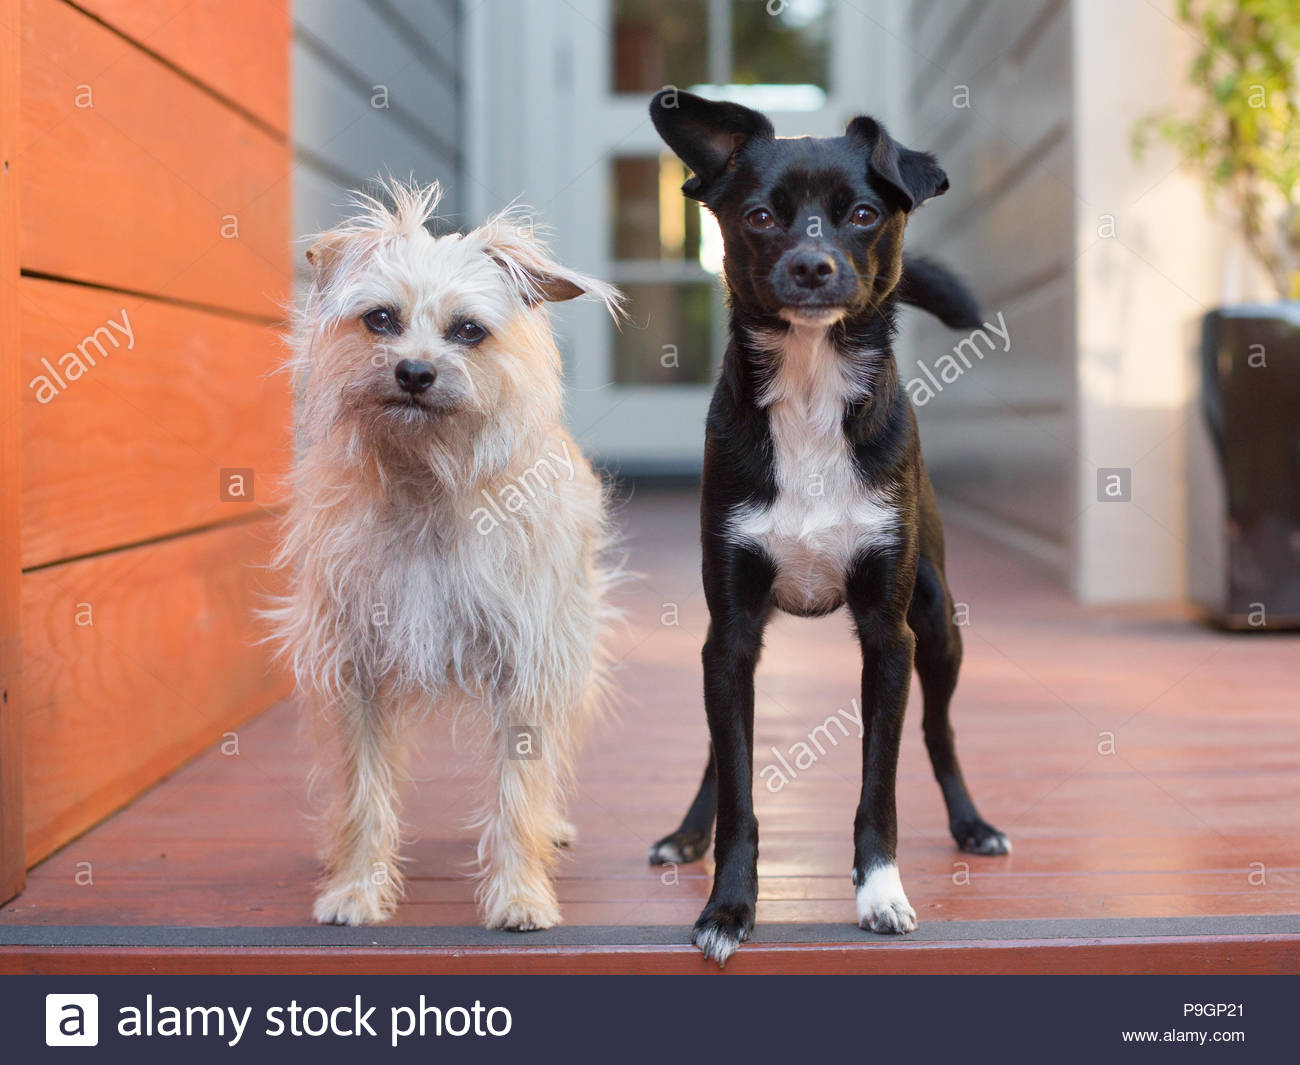 Two small terrier mix dogs with cute expressions standing on a porch - Stock Image